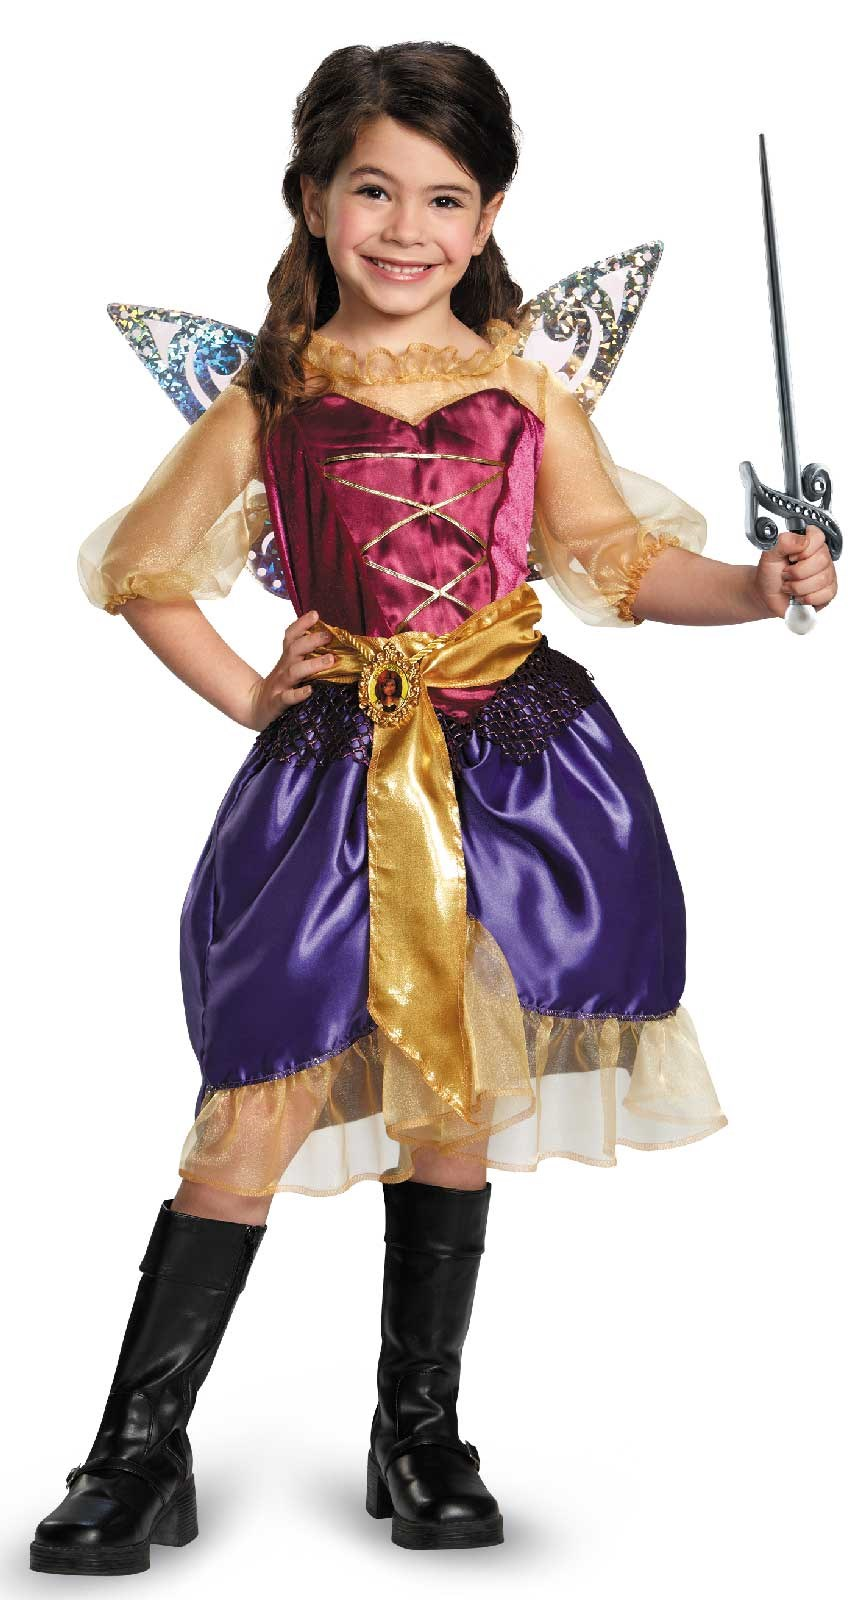 Tinker Bell and The Pirate Fairy - Pirate Zarina Girls Costume 10-12